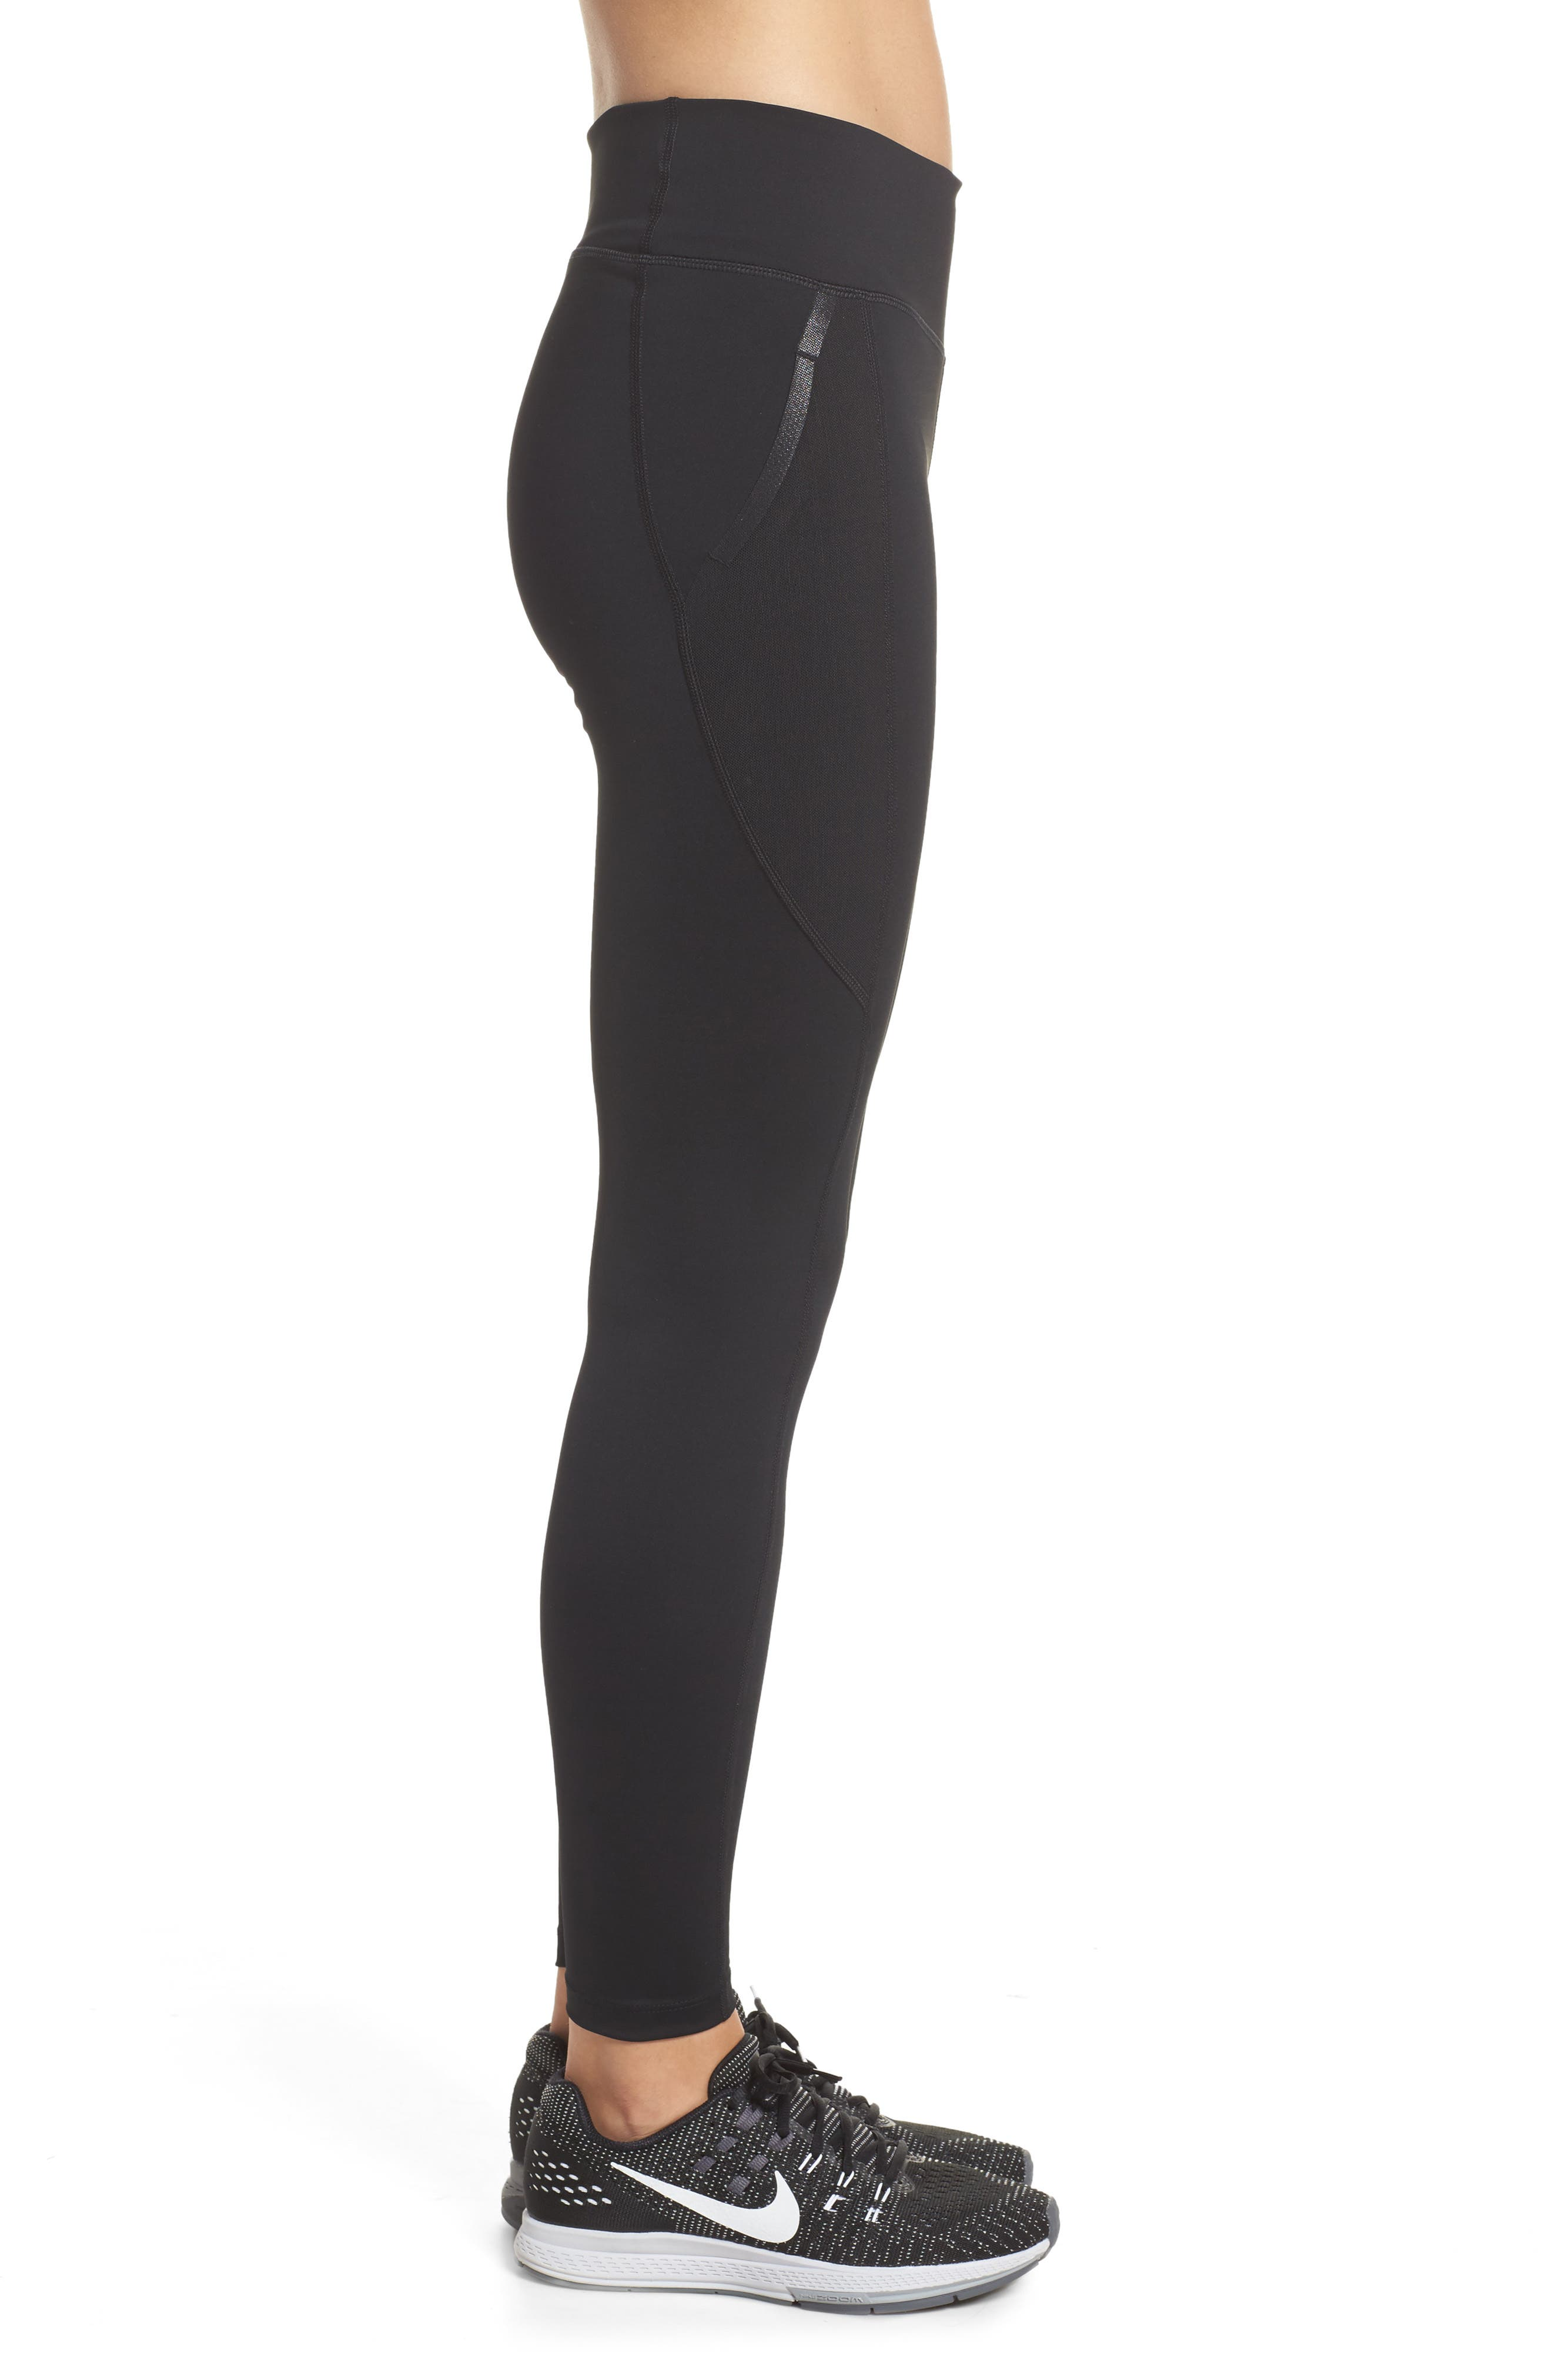 Power Pocket Lux Ankle Tights,                             Alternate thumbnail 3, color,                             BLACK/ BLACK/ CLEAR